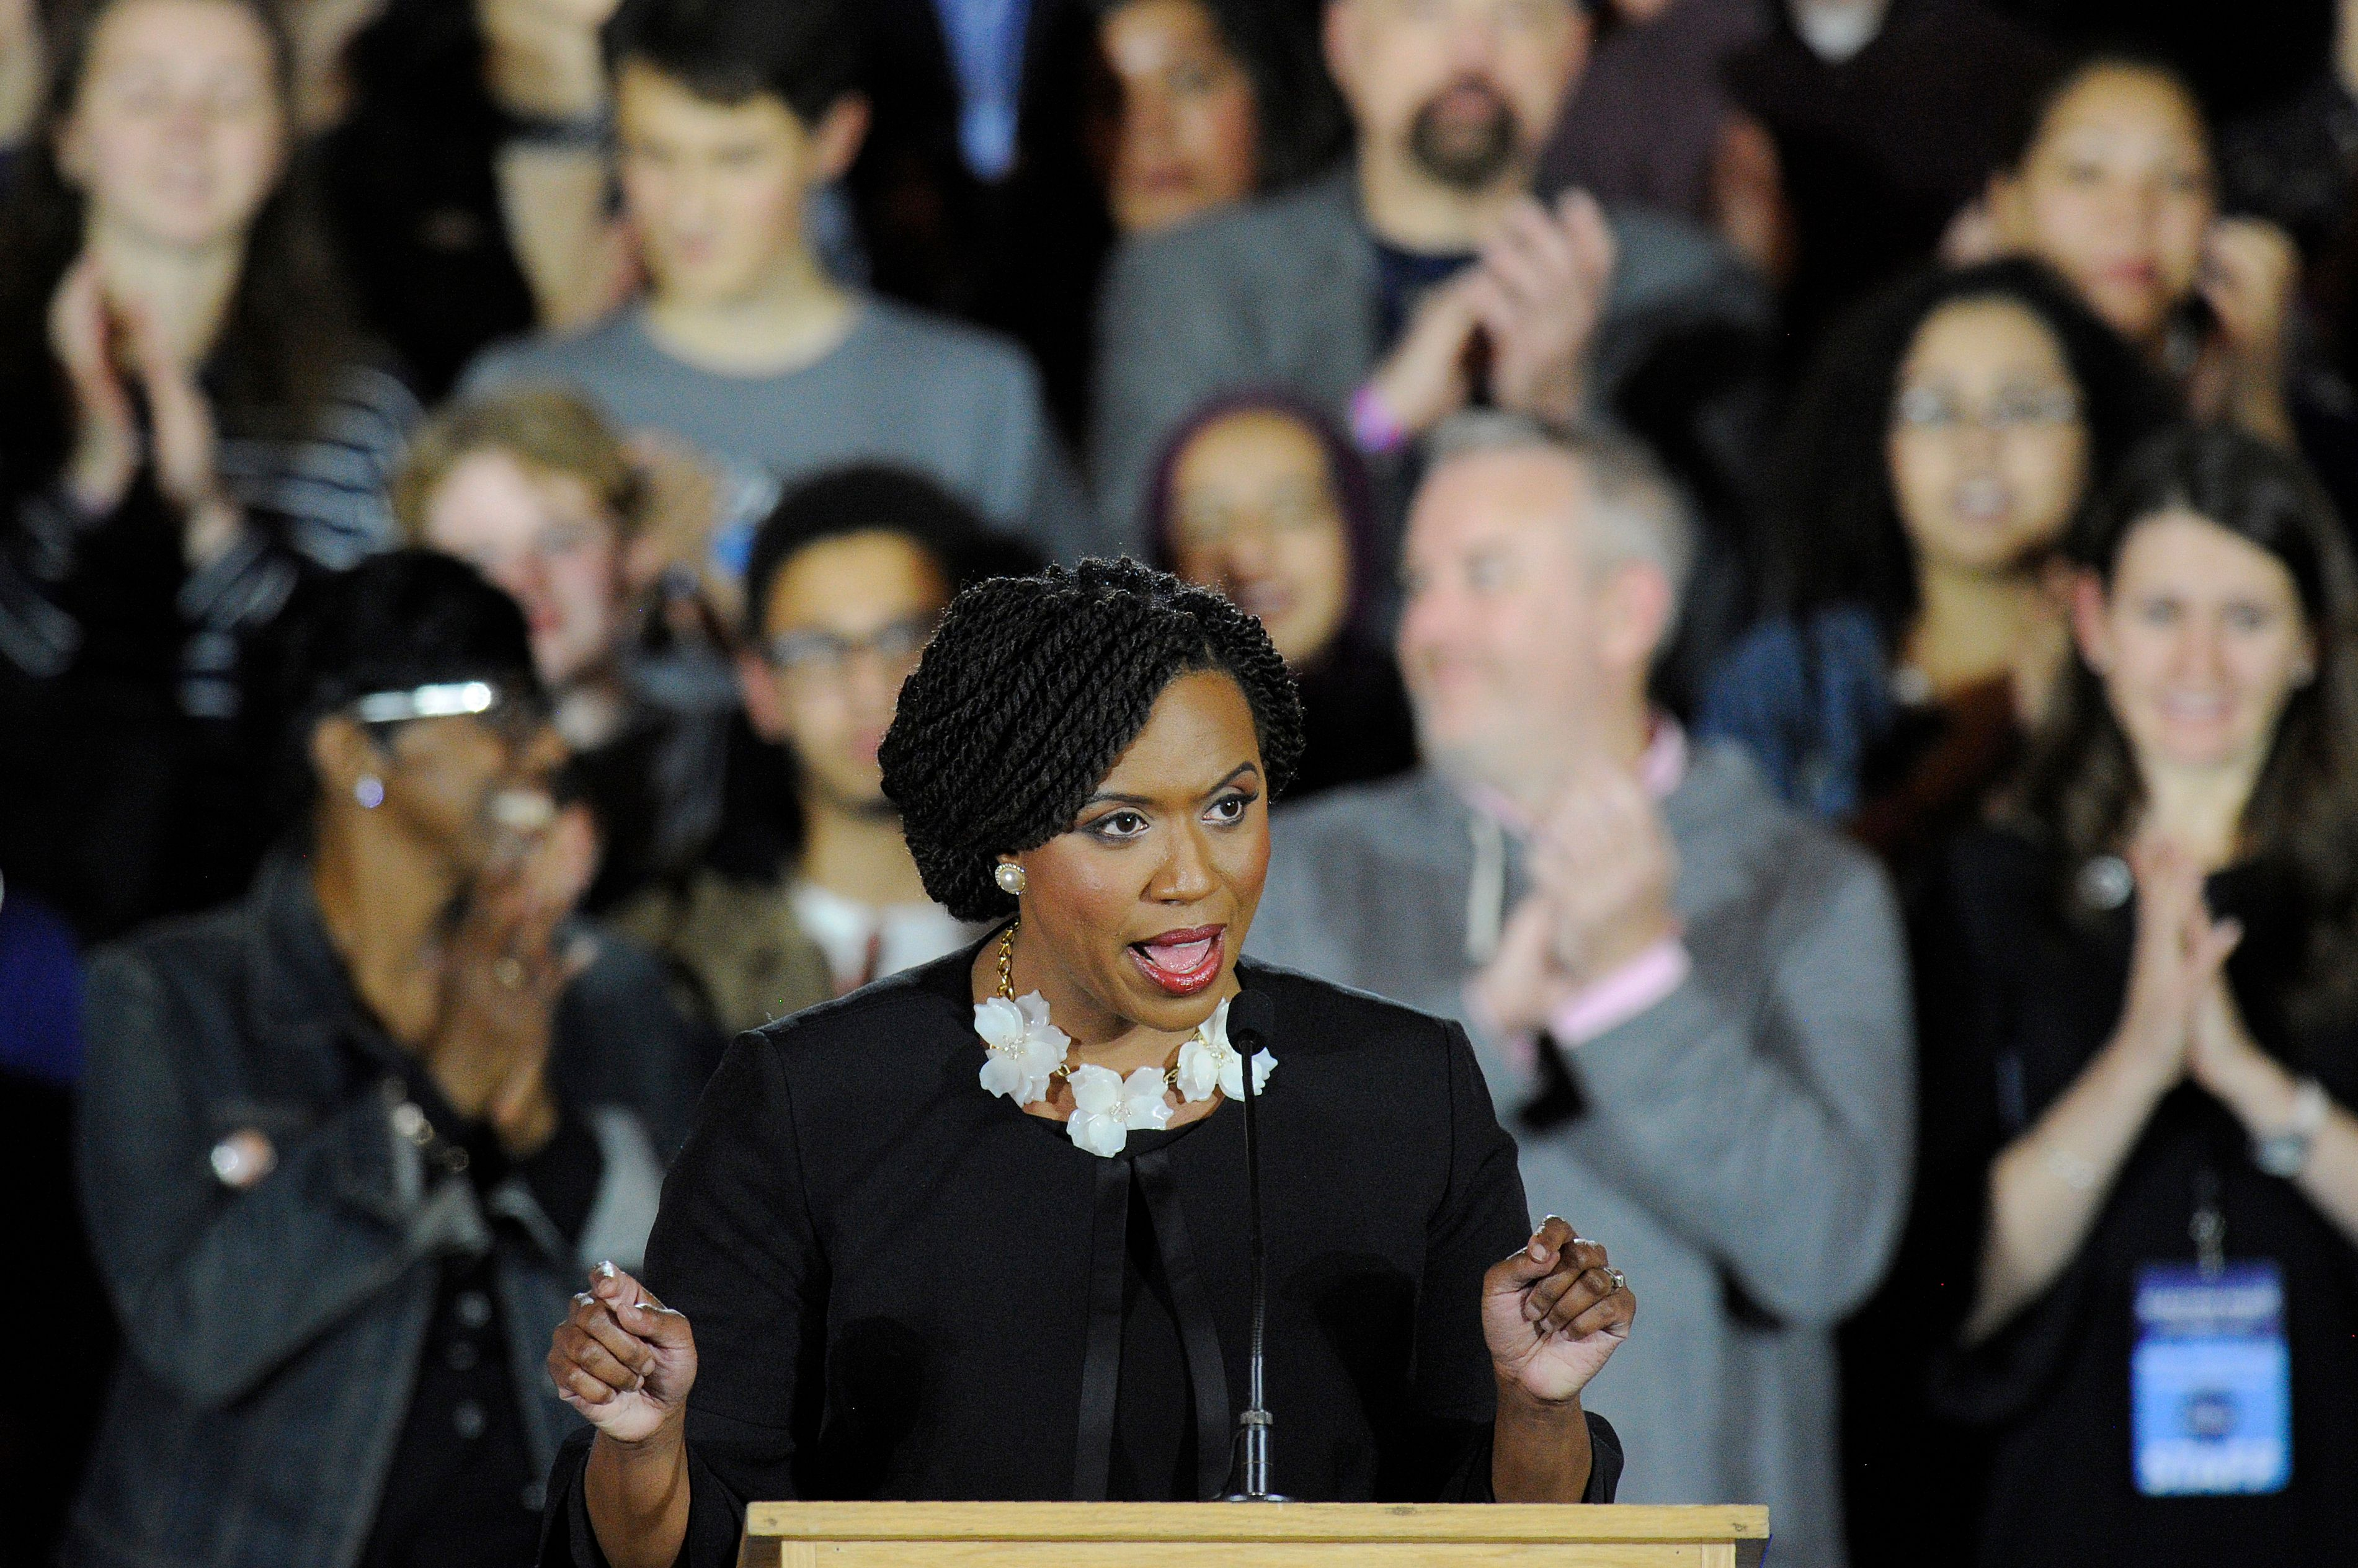 Congresswoman-elect Ayanna Pressley addresses the audience during the Election Day Massachusetts Democratic Coordinated Campaign Election Night Celebration at the Fairmont Copley Hotel in Boston, Massachusetts on November 6, 2018. JOSEPH PREZIOSO/AFP/Getty Images